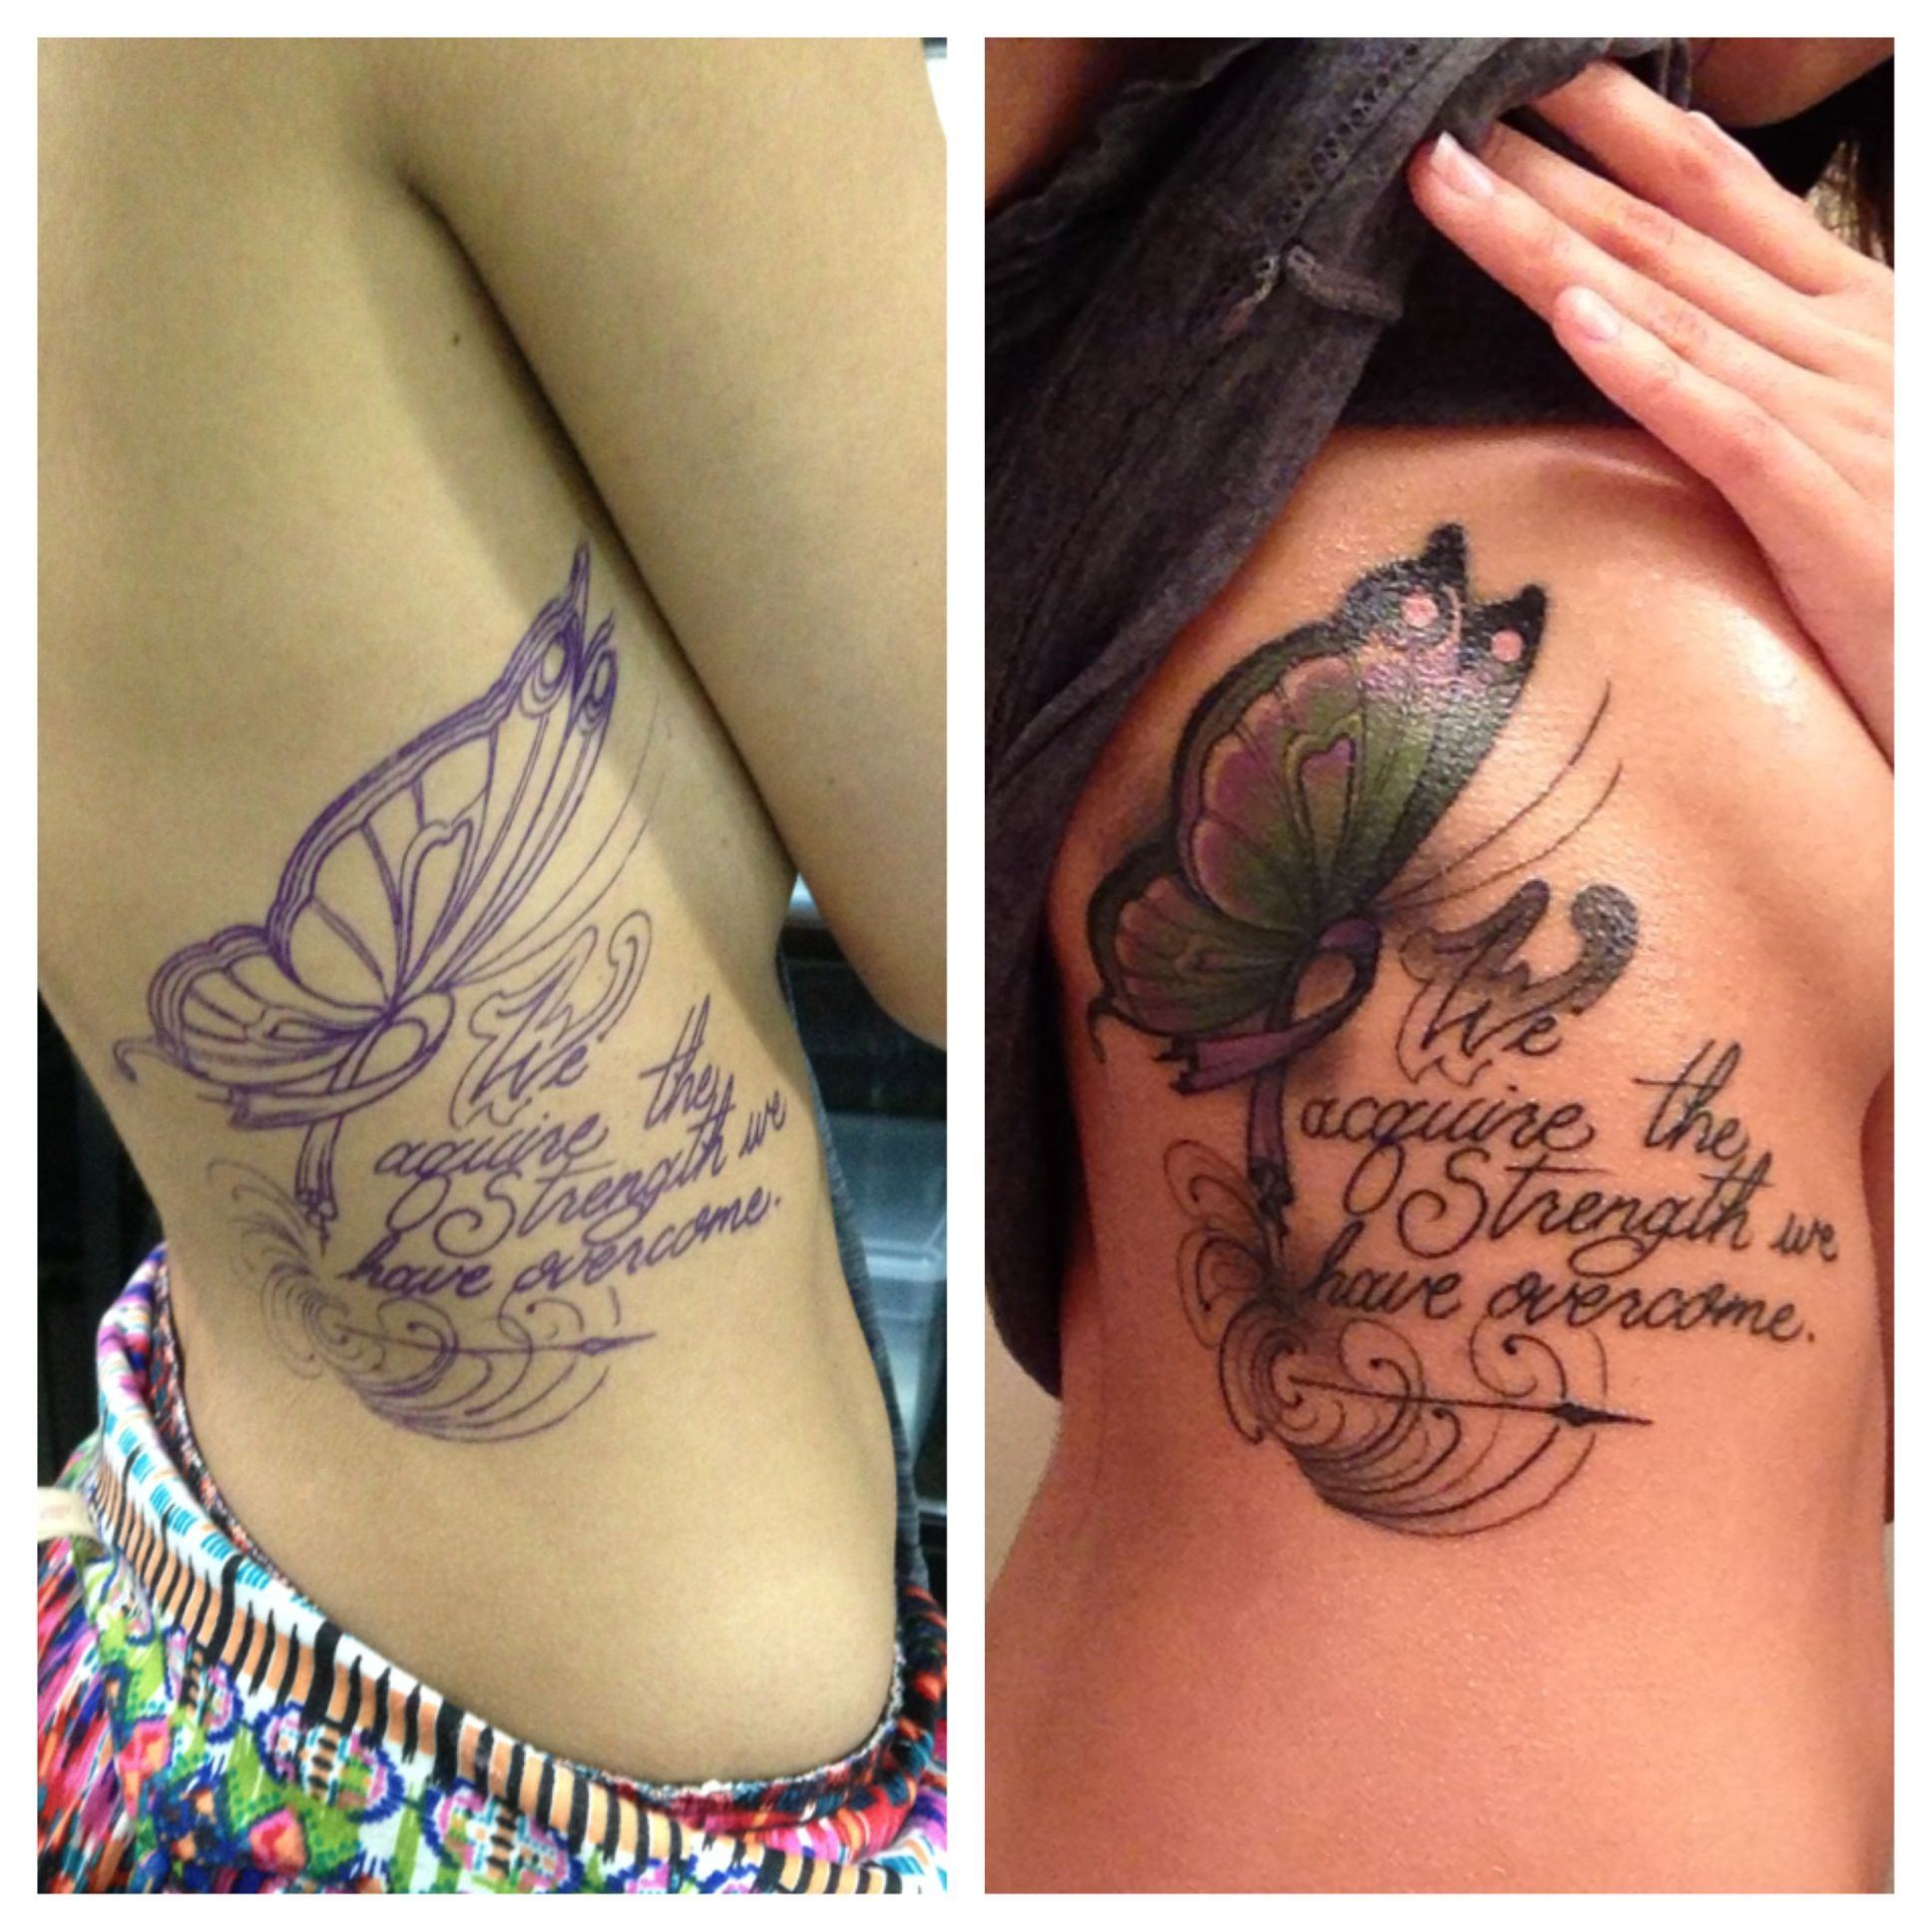 quotes about overcoming struggles tattoo quotesgram